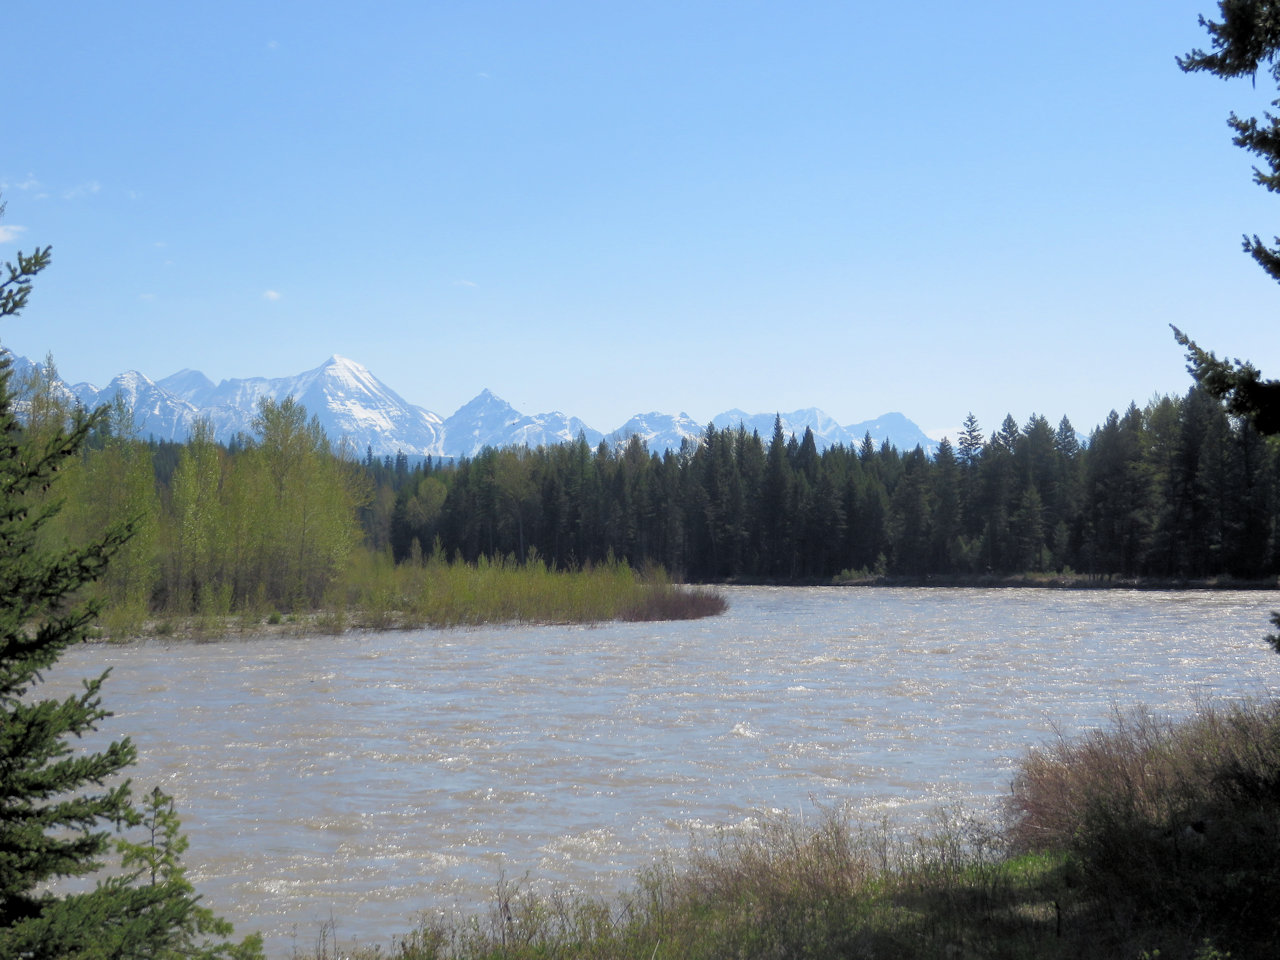 North Fork Flathead River at Ford Landing, May 16, 2018 - by William K. Walker